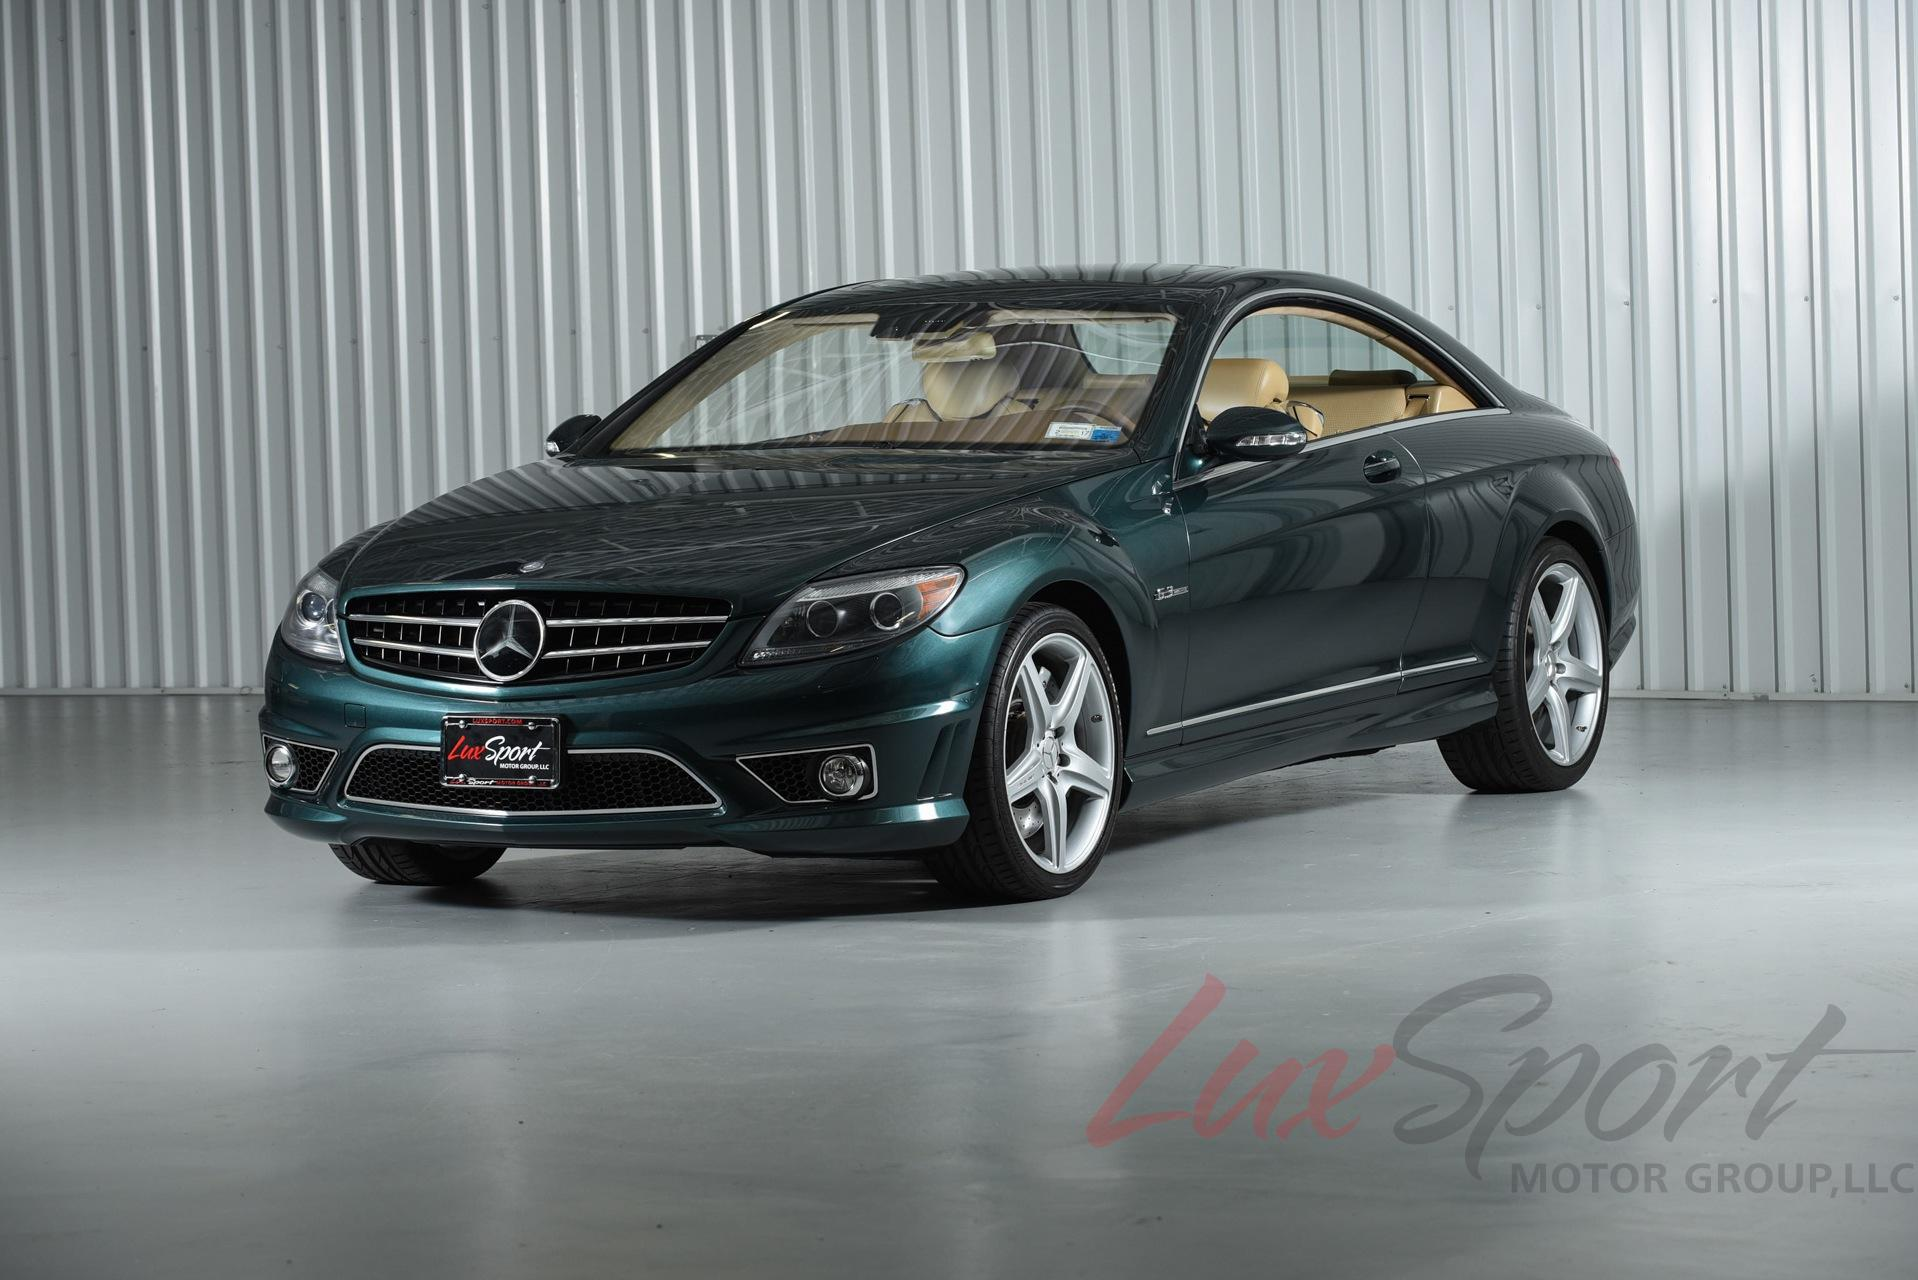 2008 mercedes benz cl63 amg coupe cl 63 amg stock 2008111 for sale near new hyde park ny ny